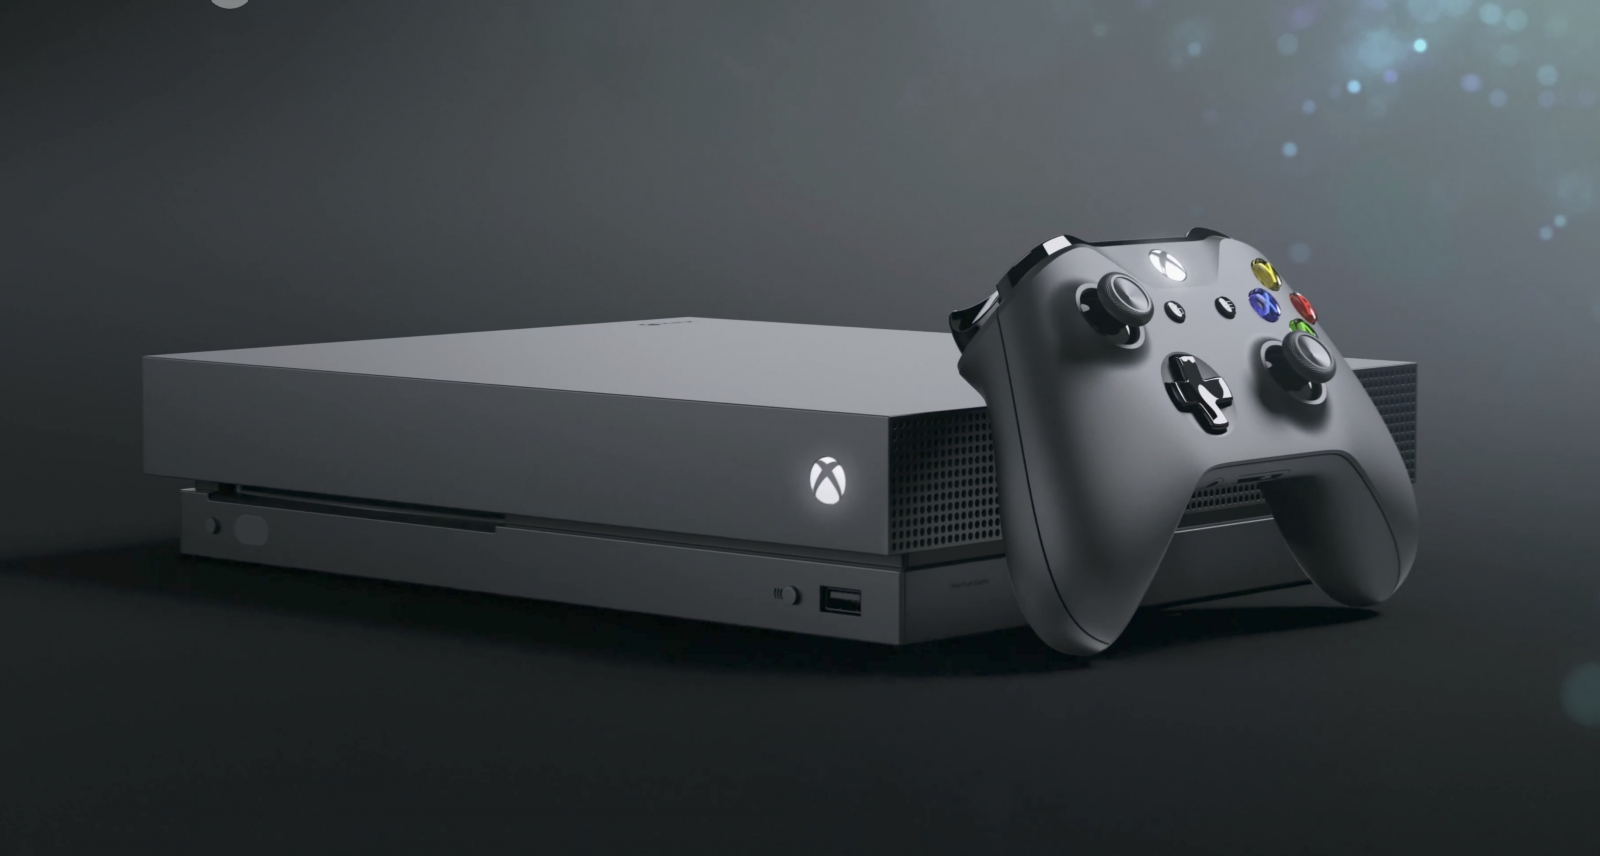 Microsoft Officially Announces Xbox One X (Project Scorpio)